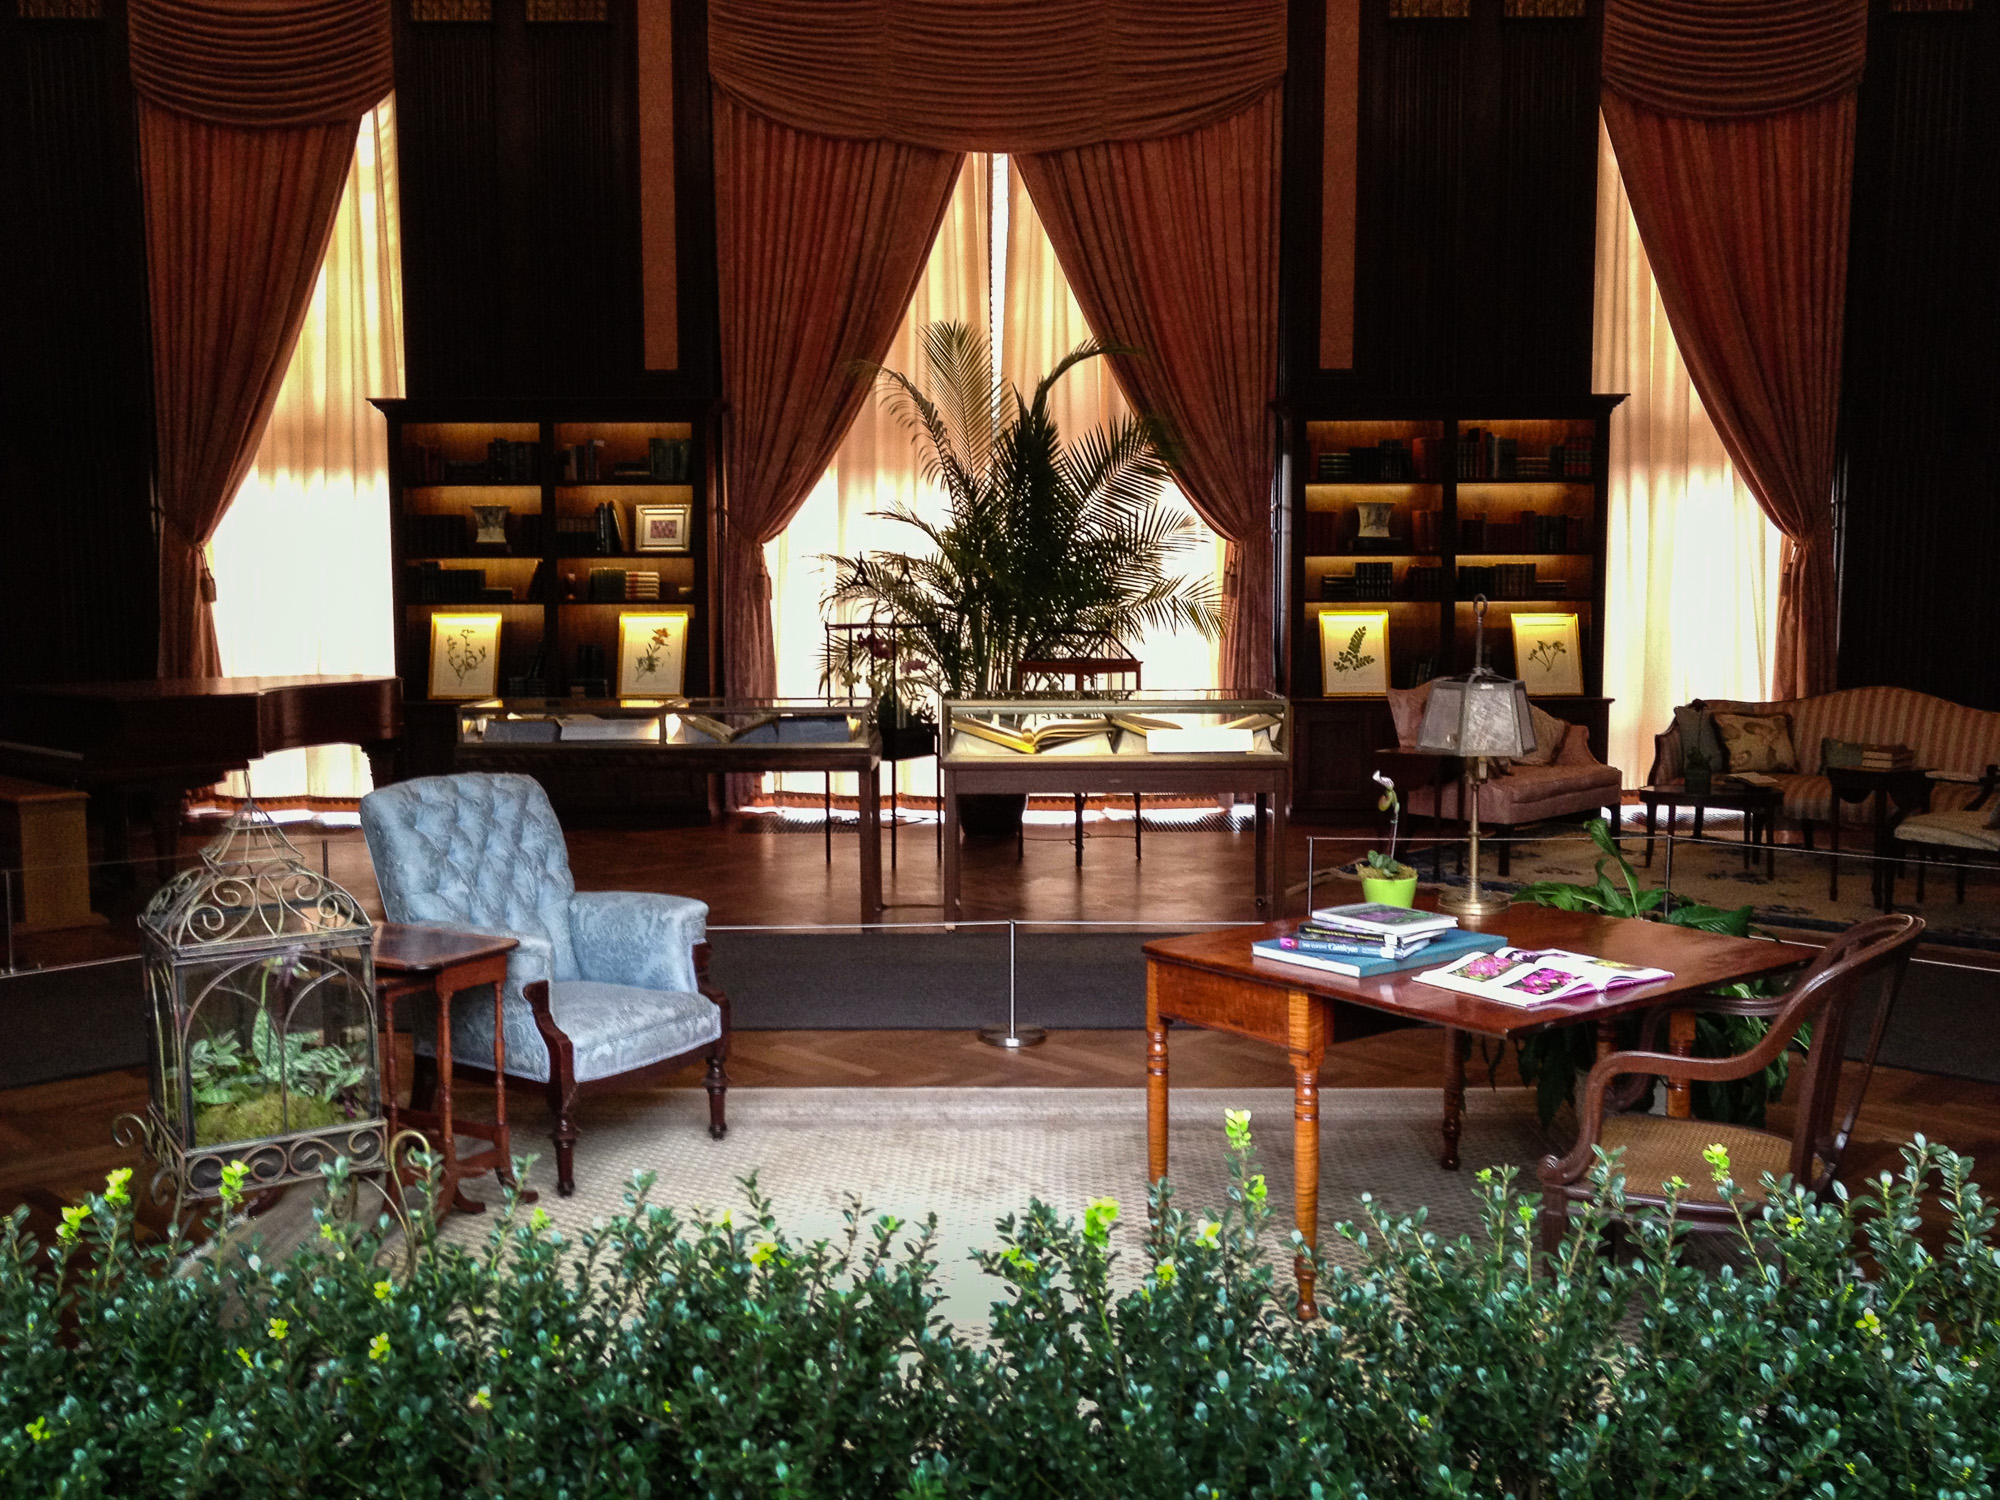 12: A display room within the Conservatory at Longwood Gardens